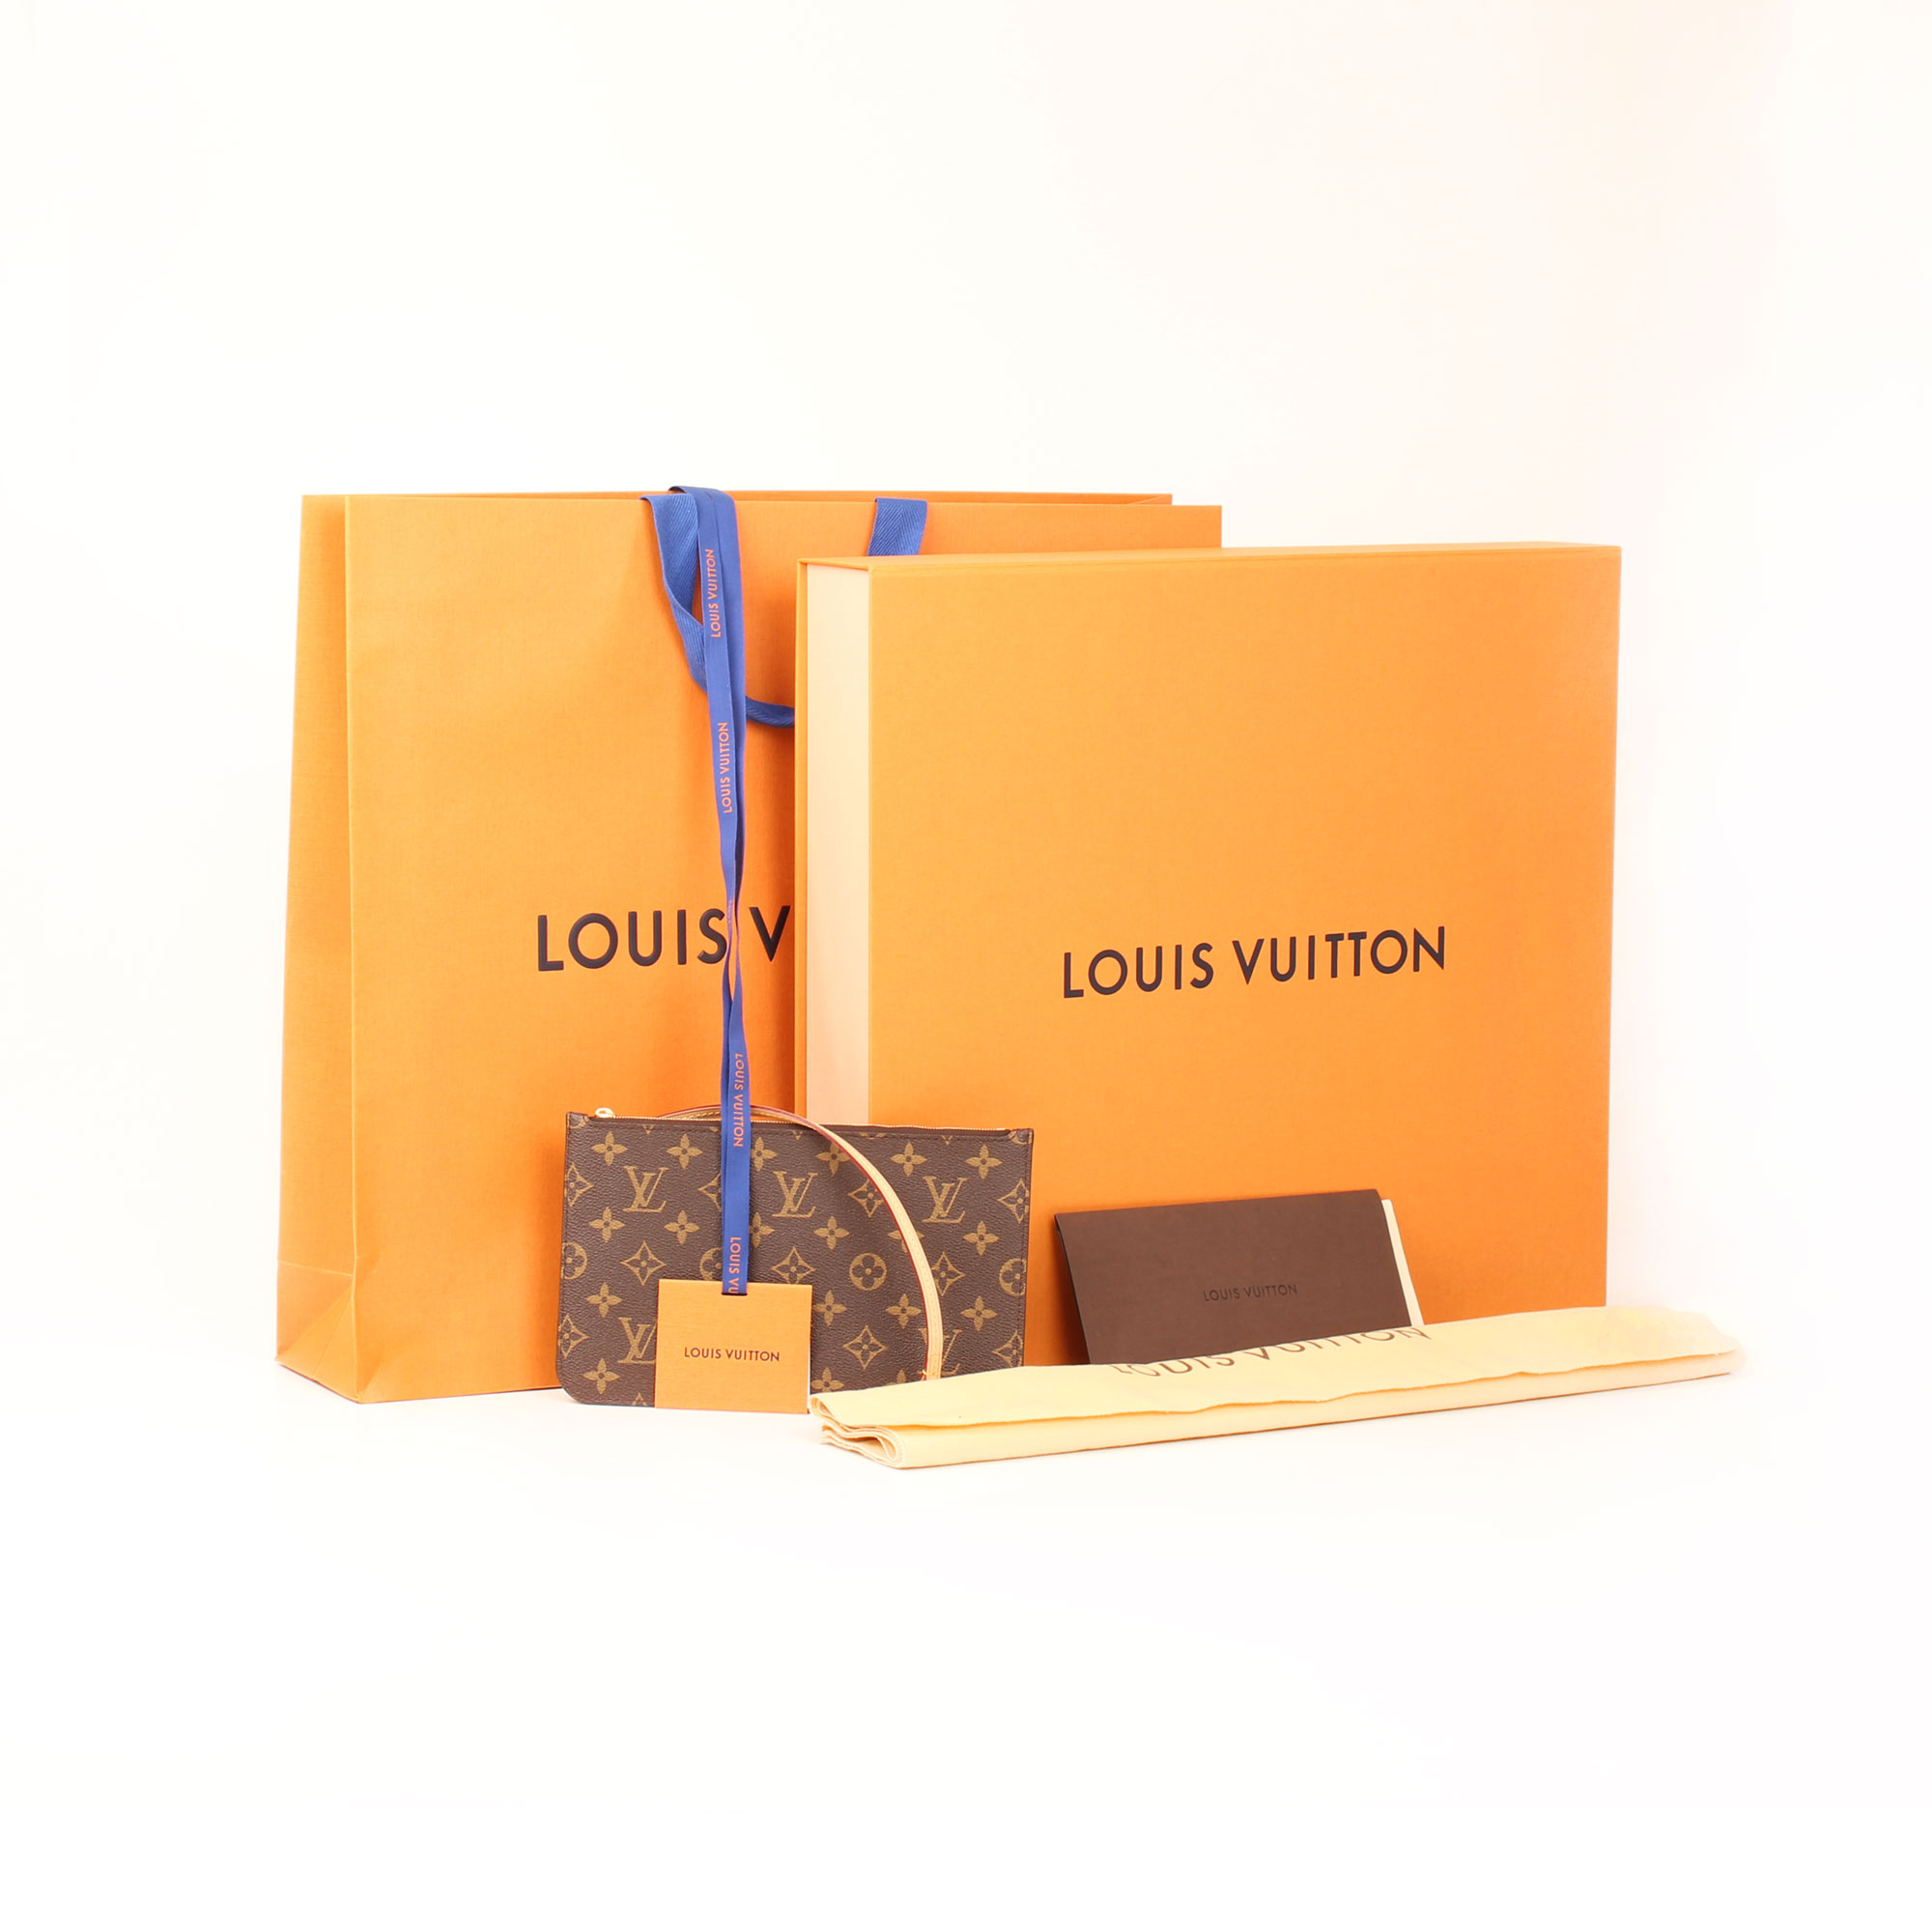 bolso-louis-vuitton-neverfull-gm-monogram-nuevo-accesorios